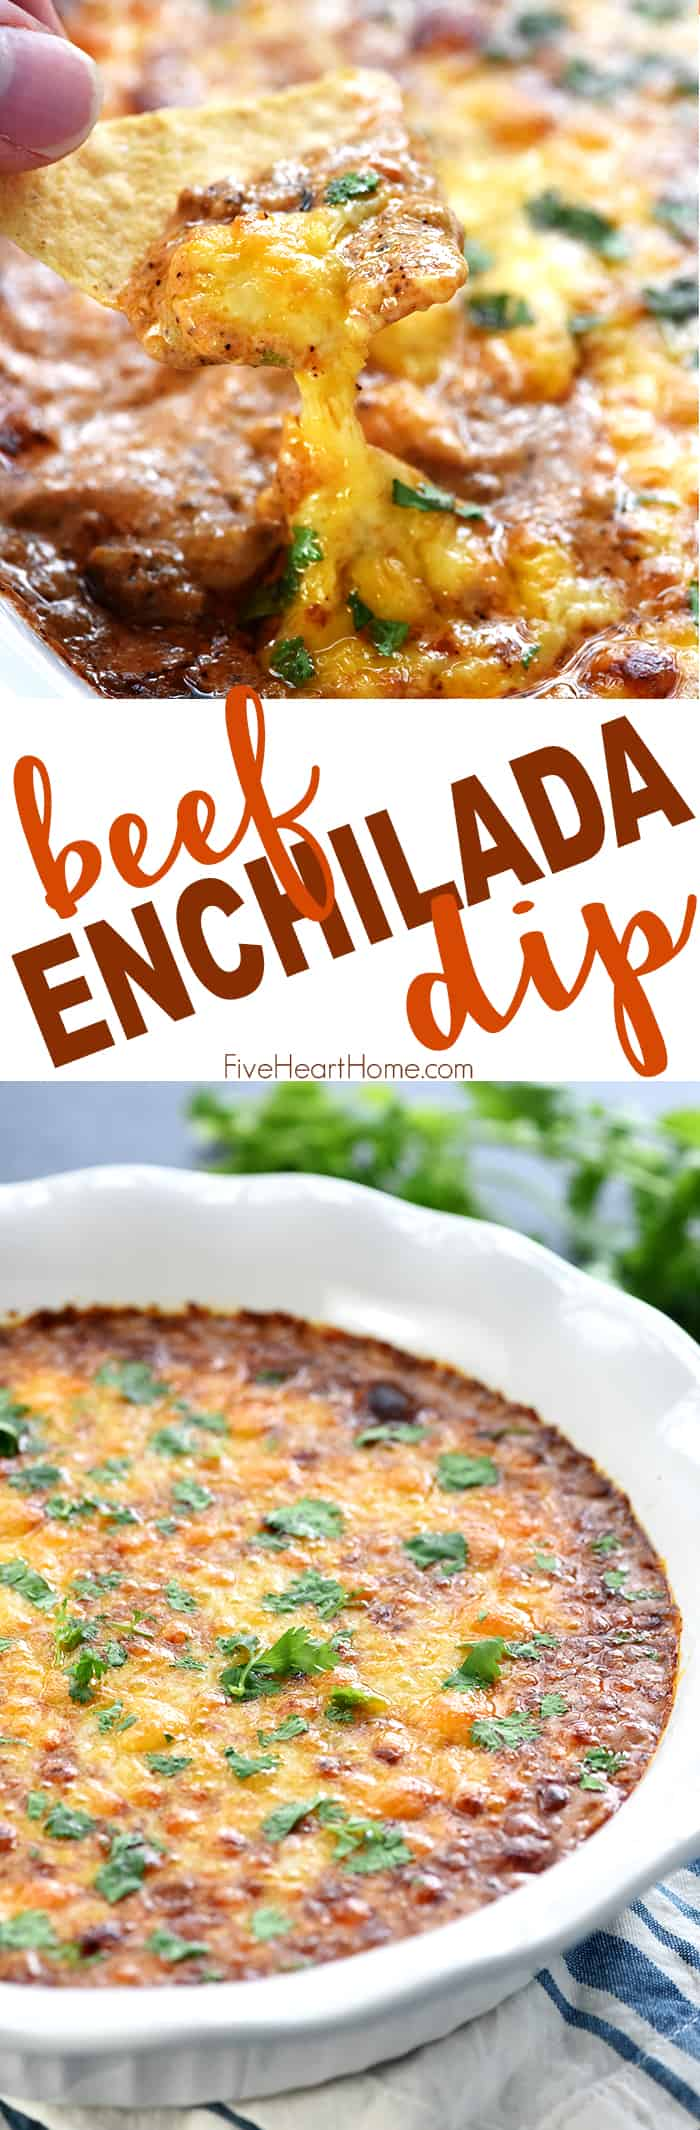 Beef Enchilada Dip ~ this creamy, cheesy appetizer has the great flavor of beef enchiladas in an easy-to-make, addictive dip...perfect for parties, get-togethers, and game day! | FiveHeartHome.com